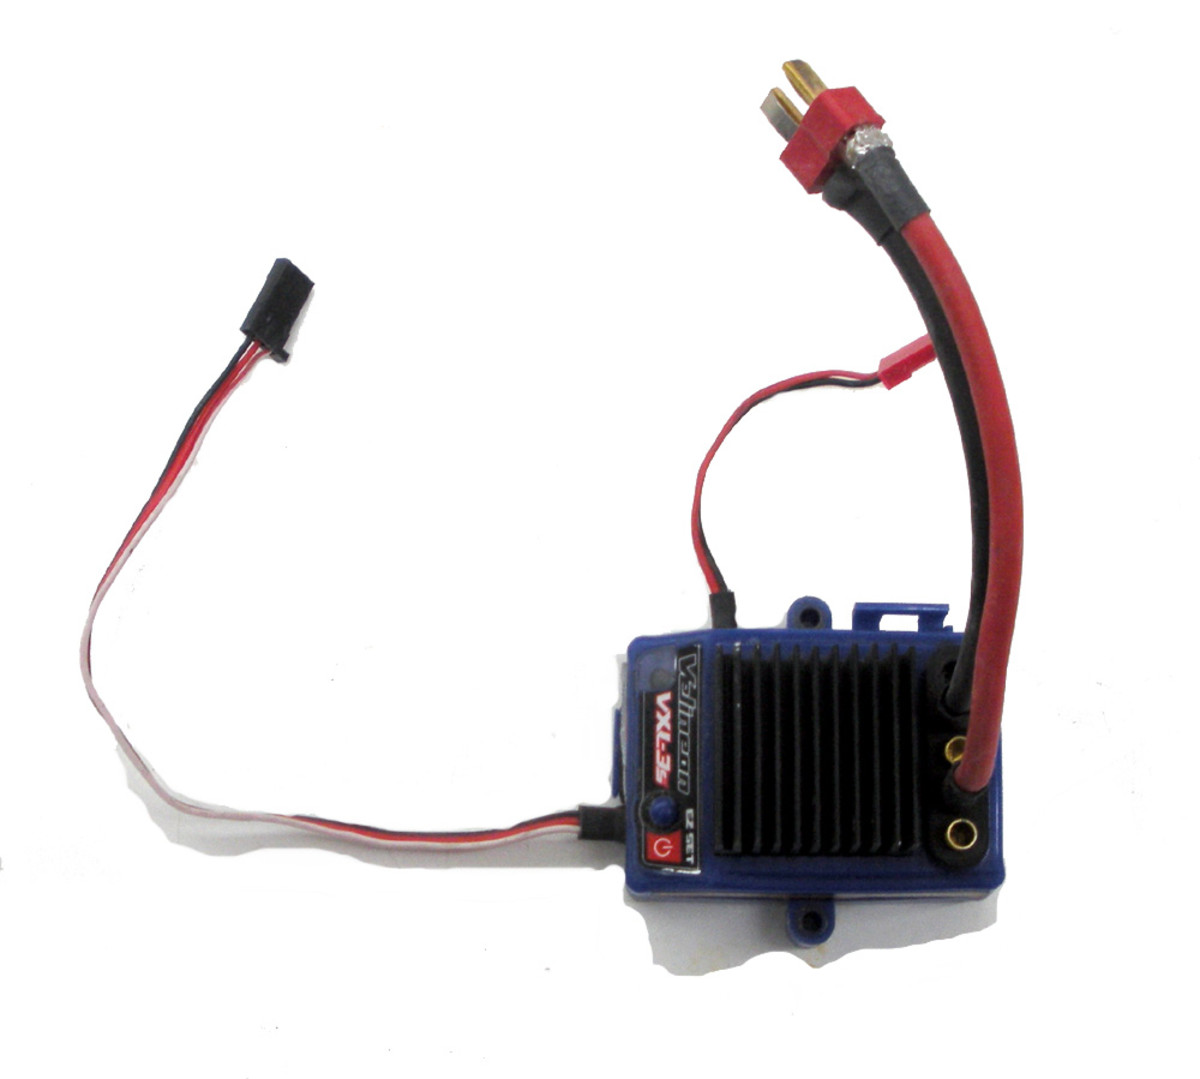 ESC for brushless motors.  Note connections for receiver and battery pack, but not for motor. Those plug in from the motor.